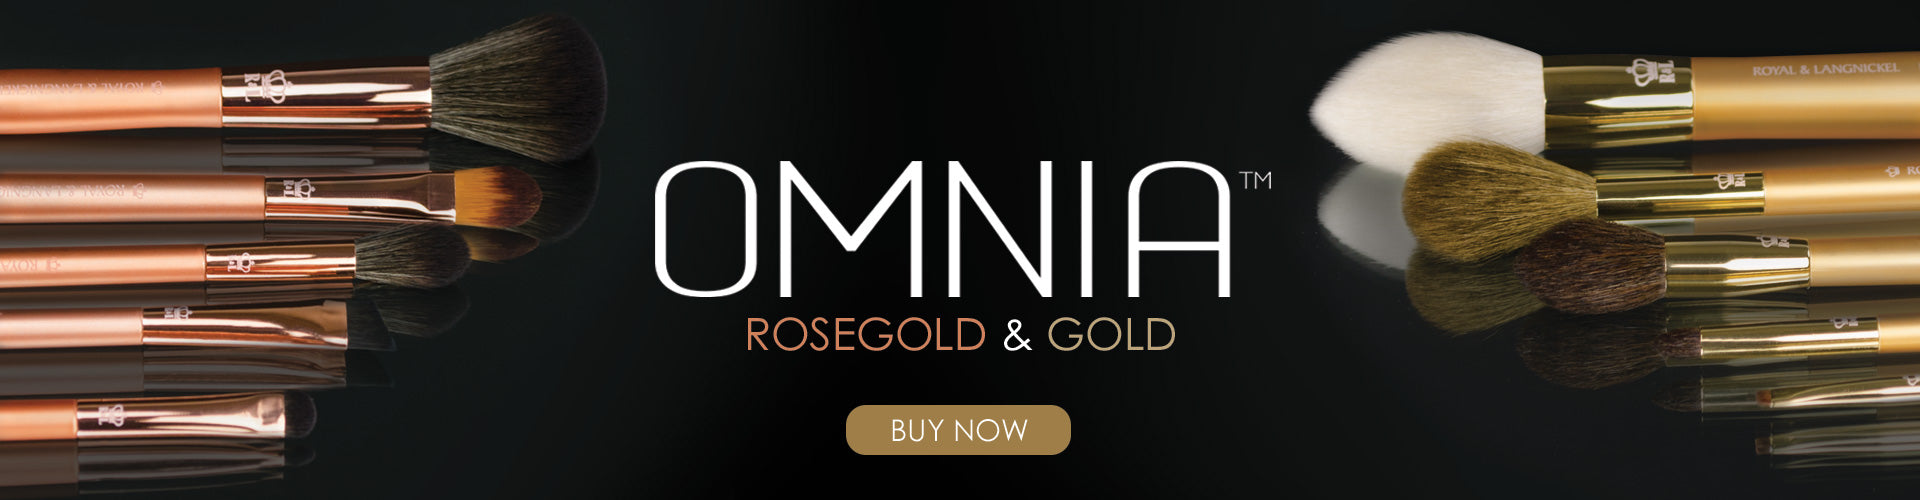 OMNIA™ - Now Available